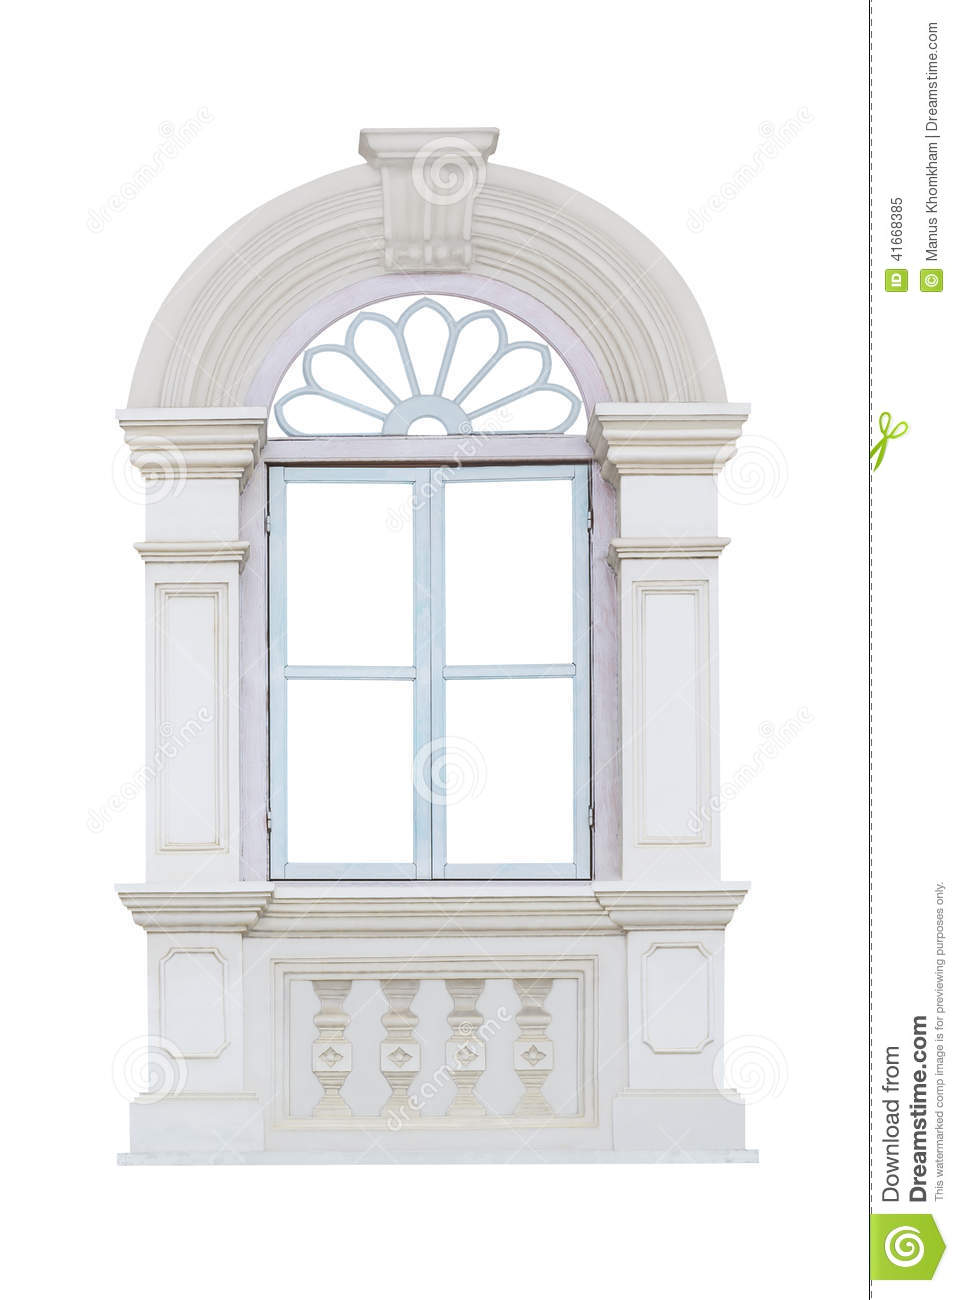 White window frame - Clipping Frame Isolated Path Window